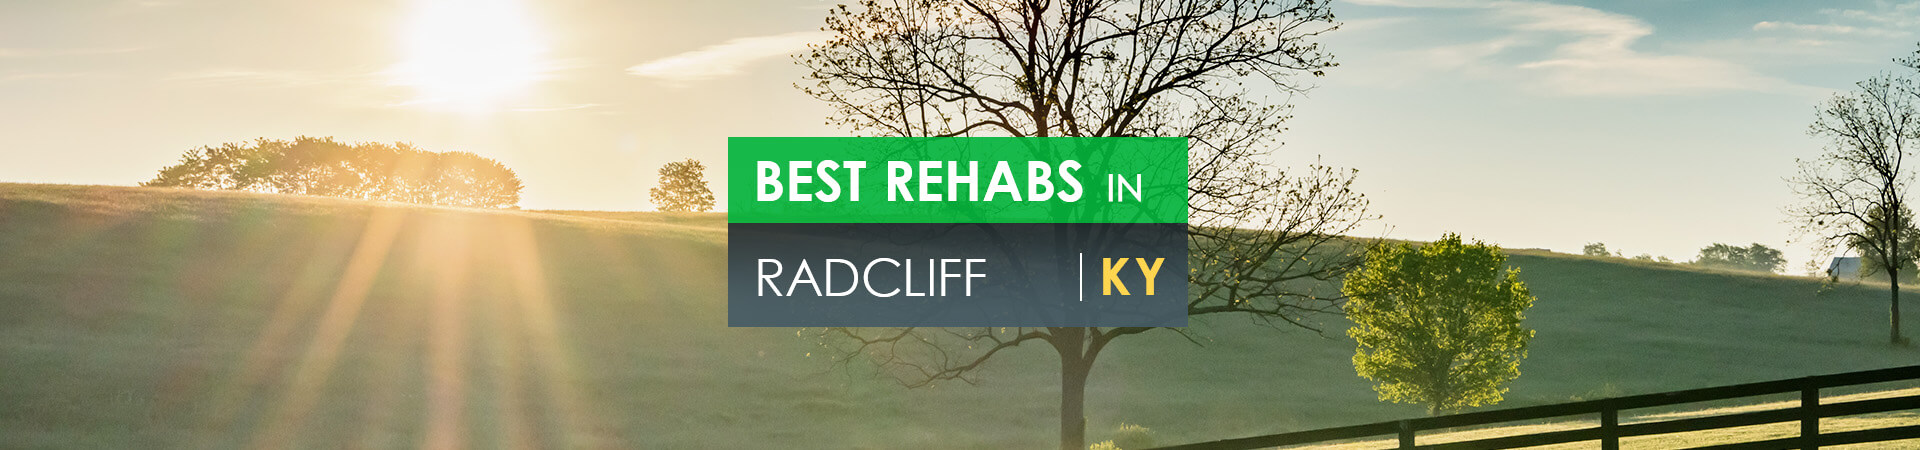 Best rehabs in Radcliff, KY